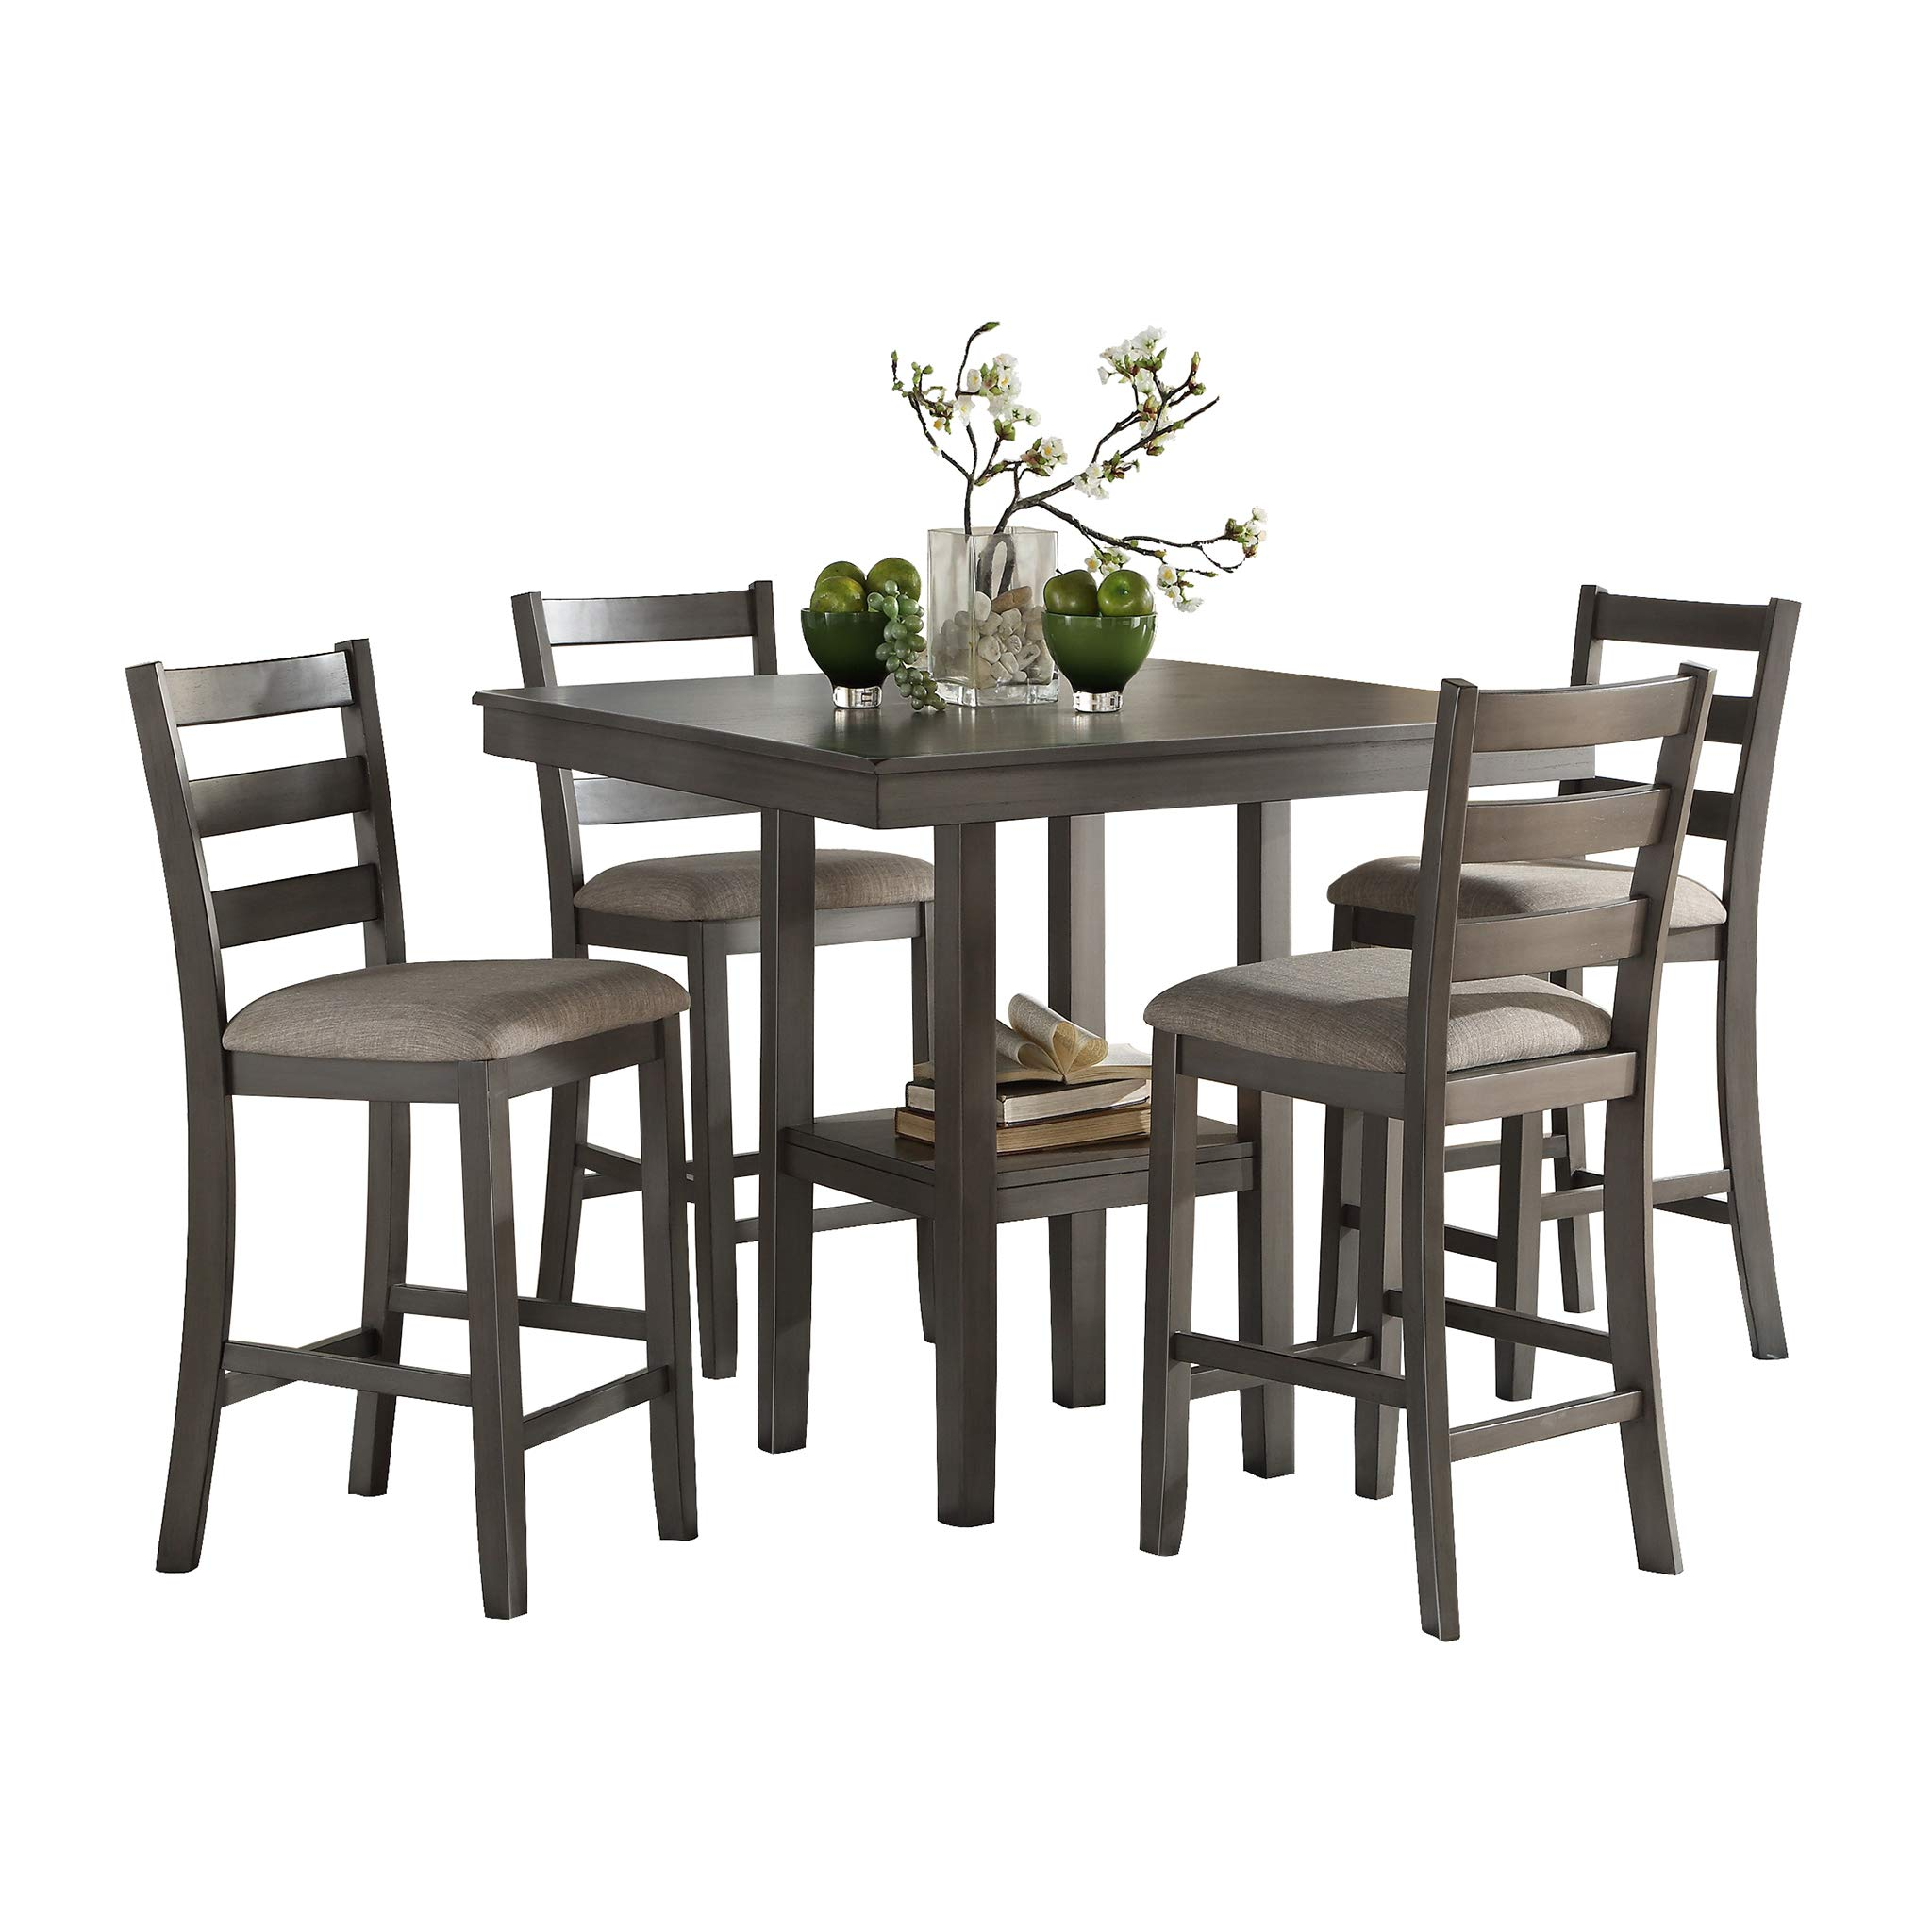 Homelegance Sharon 5-Piece Pack Counter Height Dinette Set, Gray by Homelegance